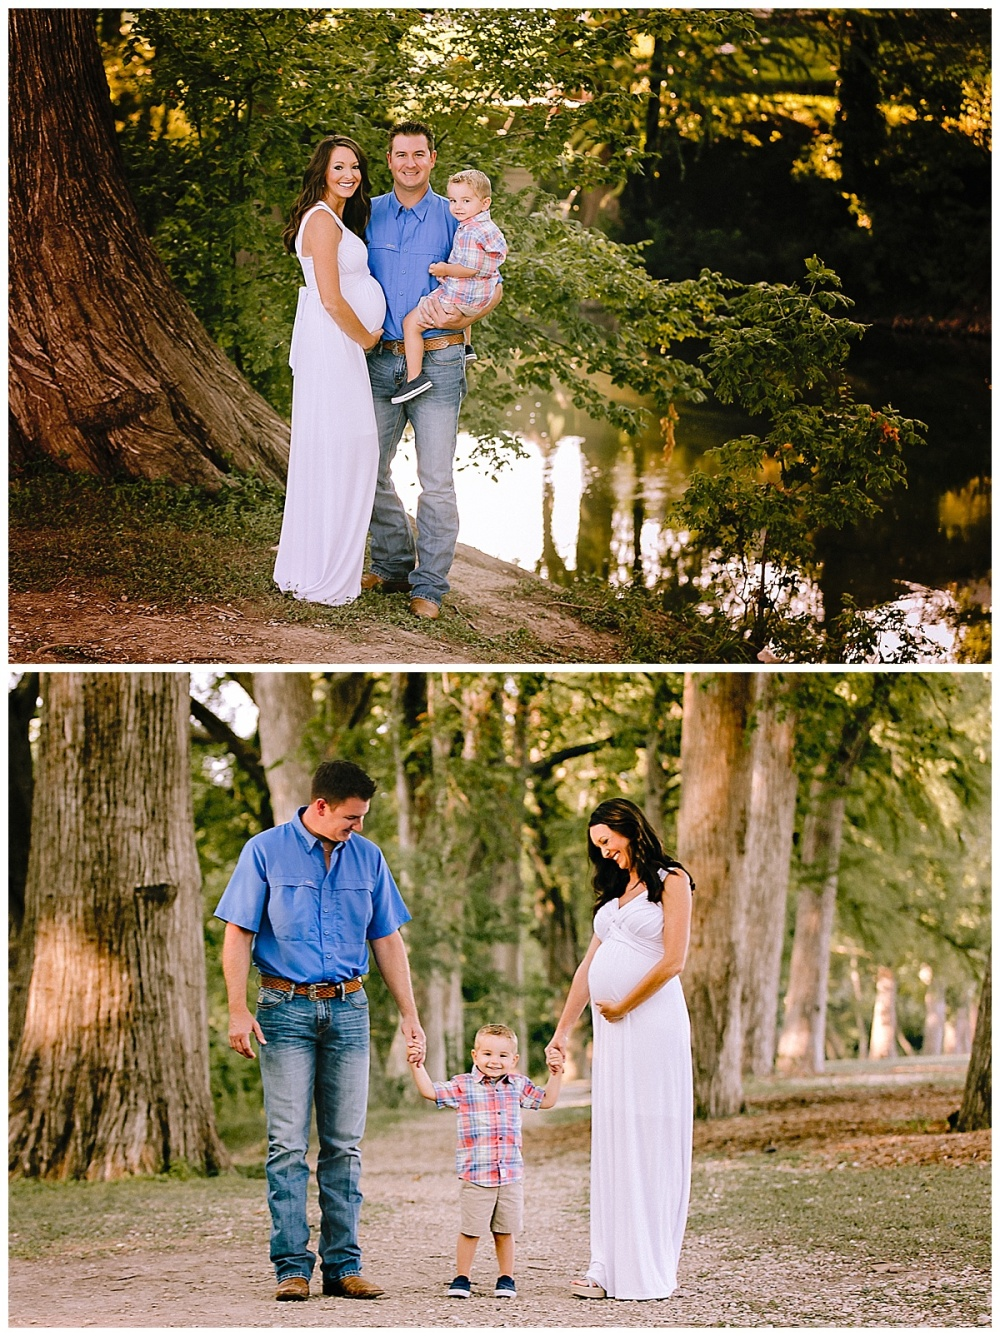 Carly-Barton-Photography-Maternity-Photos-Cypress-Bend-Park-New-Braunfels-Jonas-Family-Texas_0008.jpg